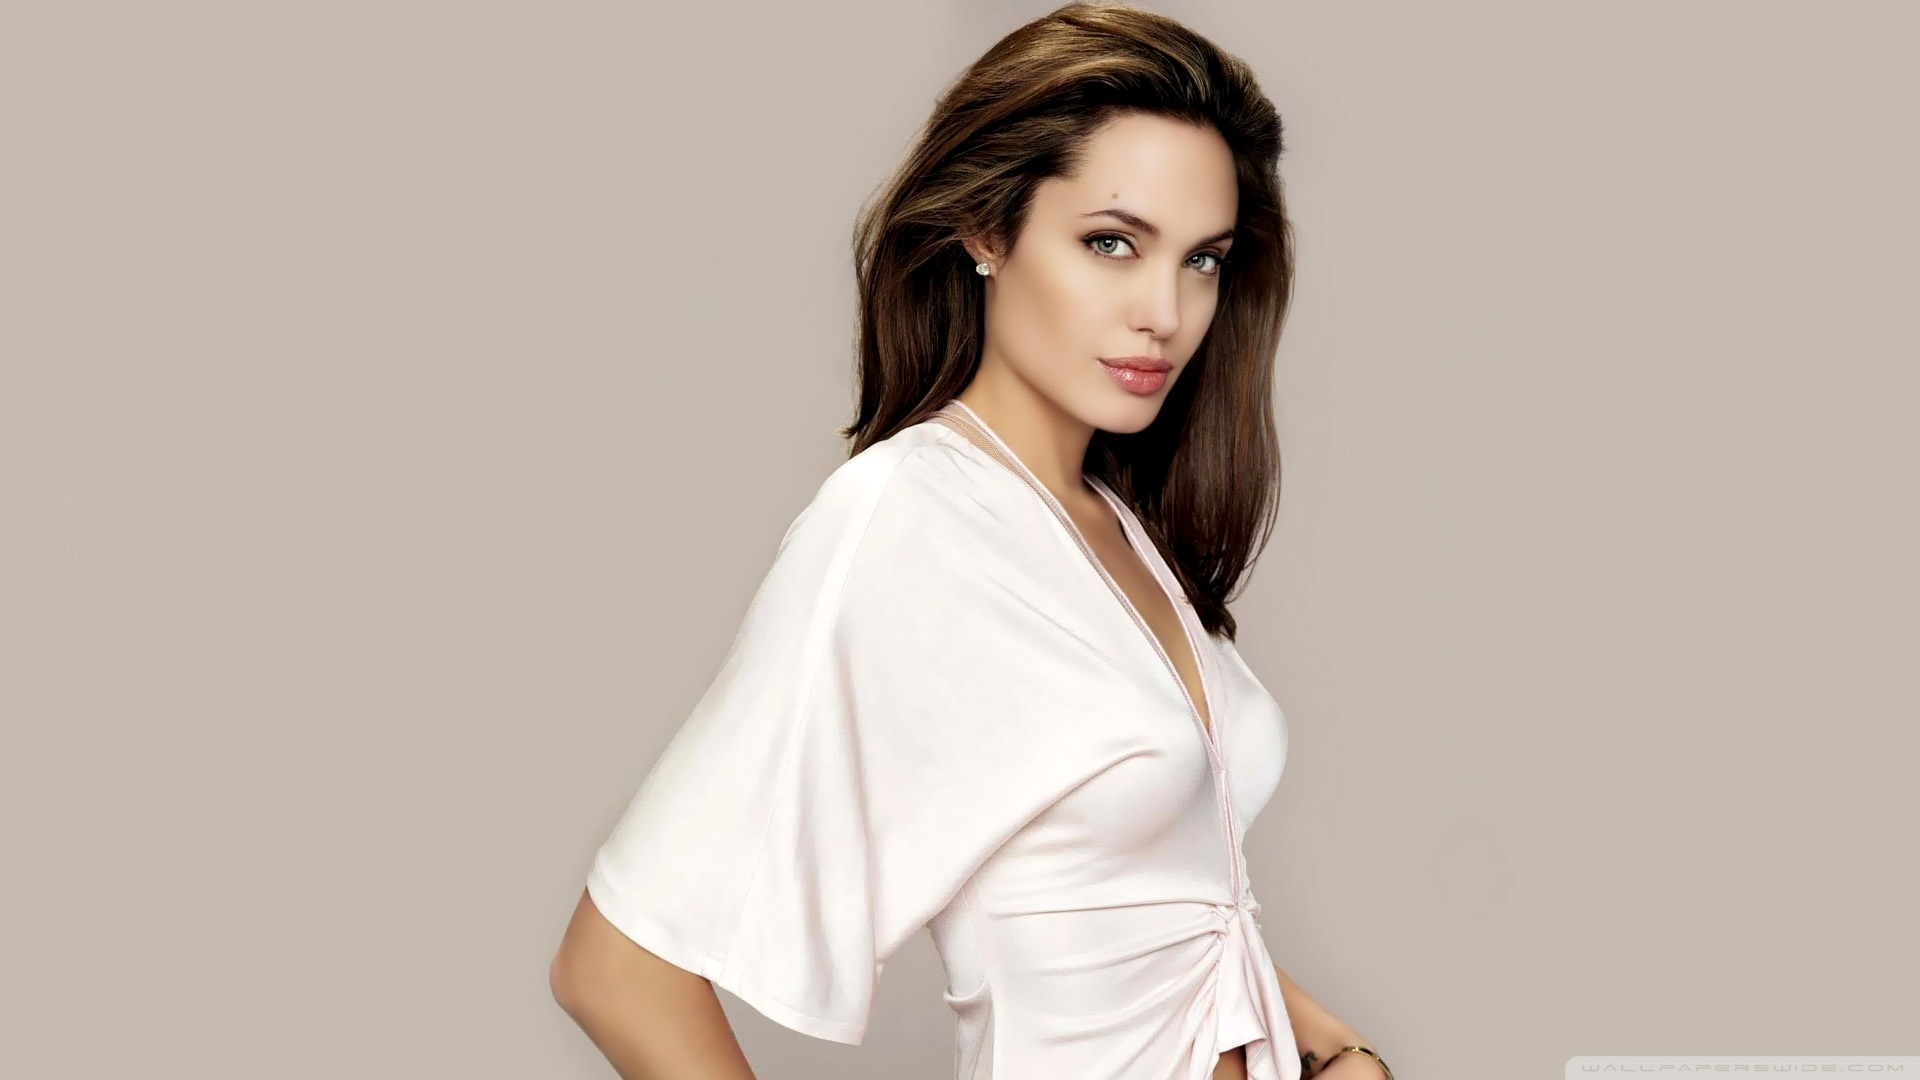 Angelina-Jolie-Full-HD-p-Best-HD-Angelina-Jolie-wallpaper-wpc5802117